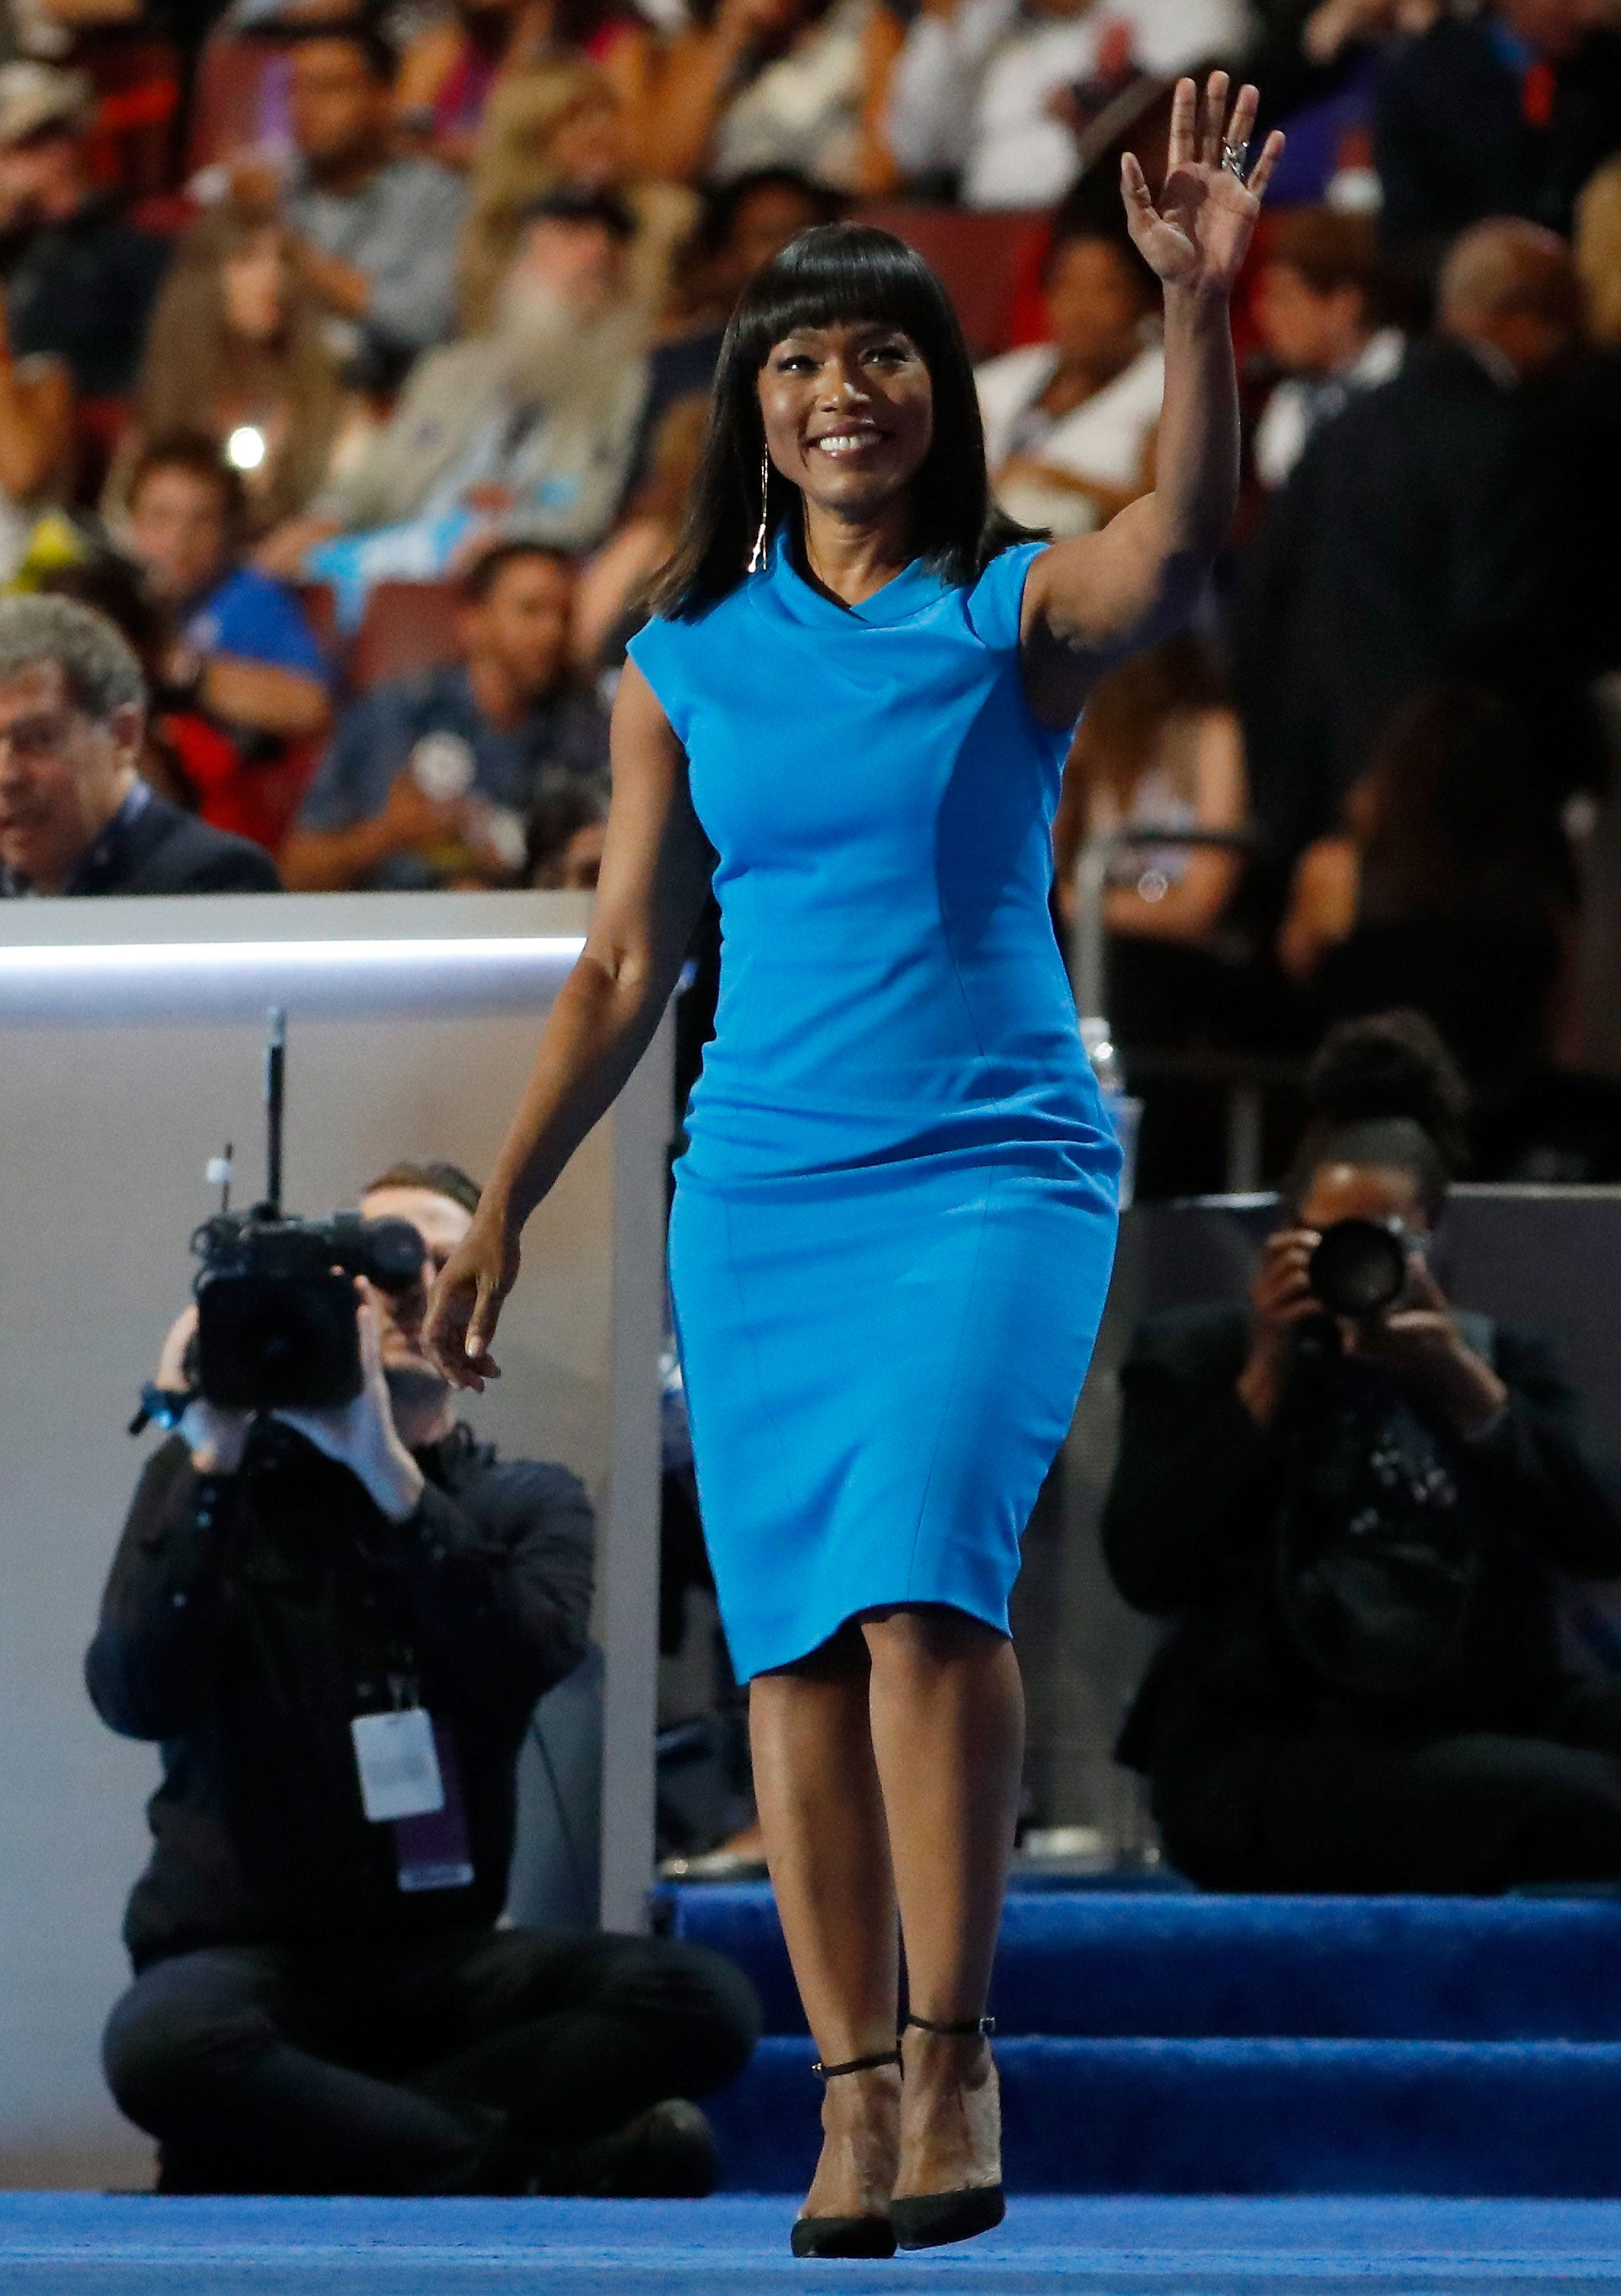 Angela Bassett Introduces Charleston Shooting Survivors At The Democratic National Convention